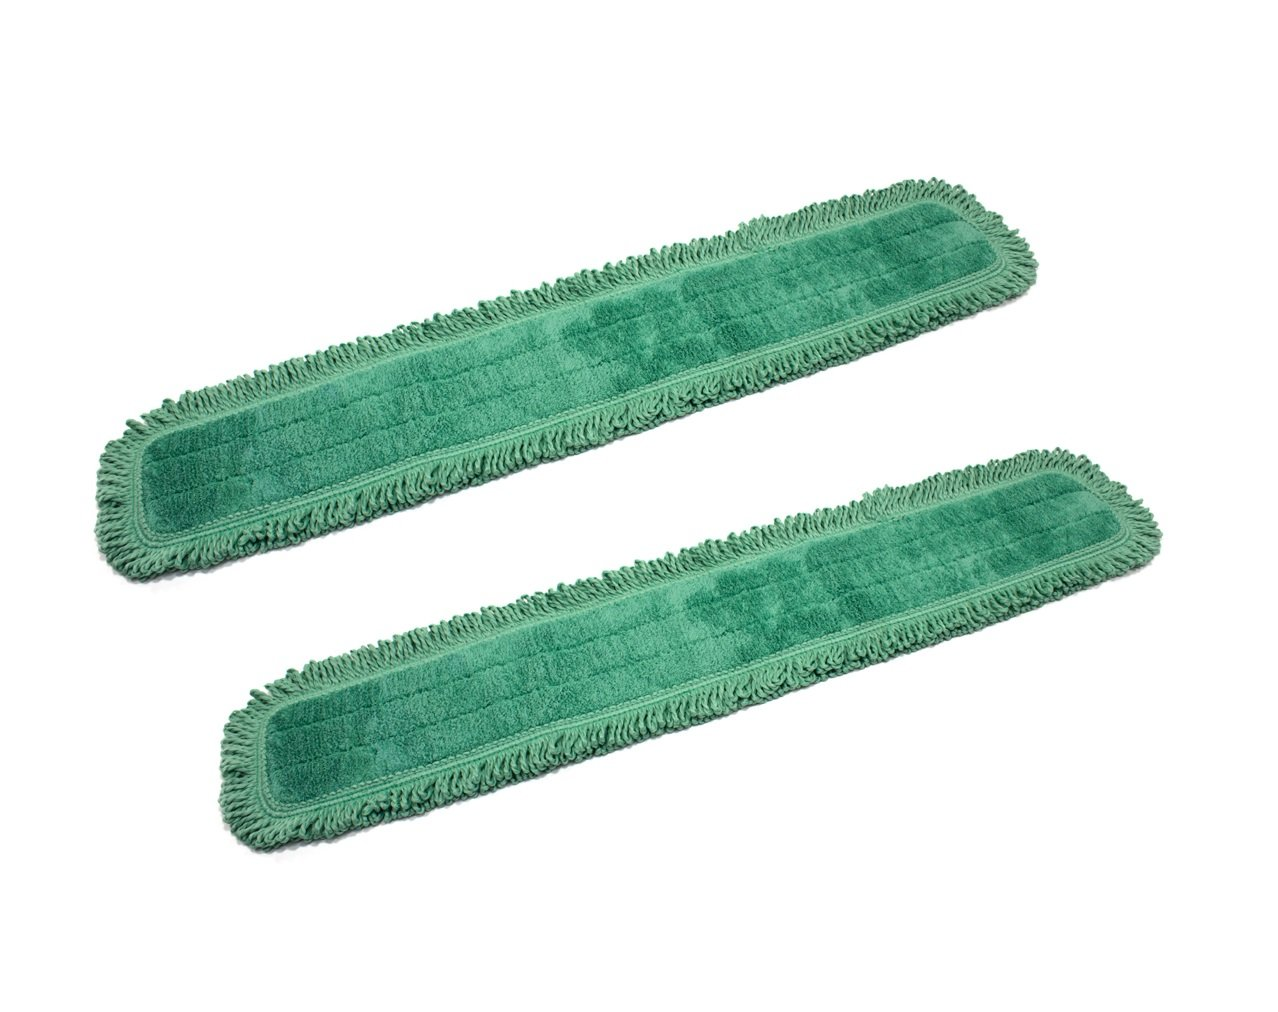 36'' Inch Green Fringe Microfiber Dust Mop Pads for Professional Commercial Microfiber Mops